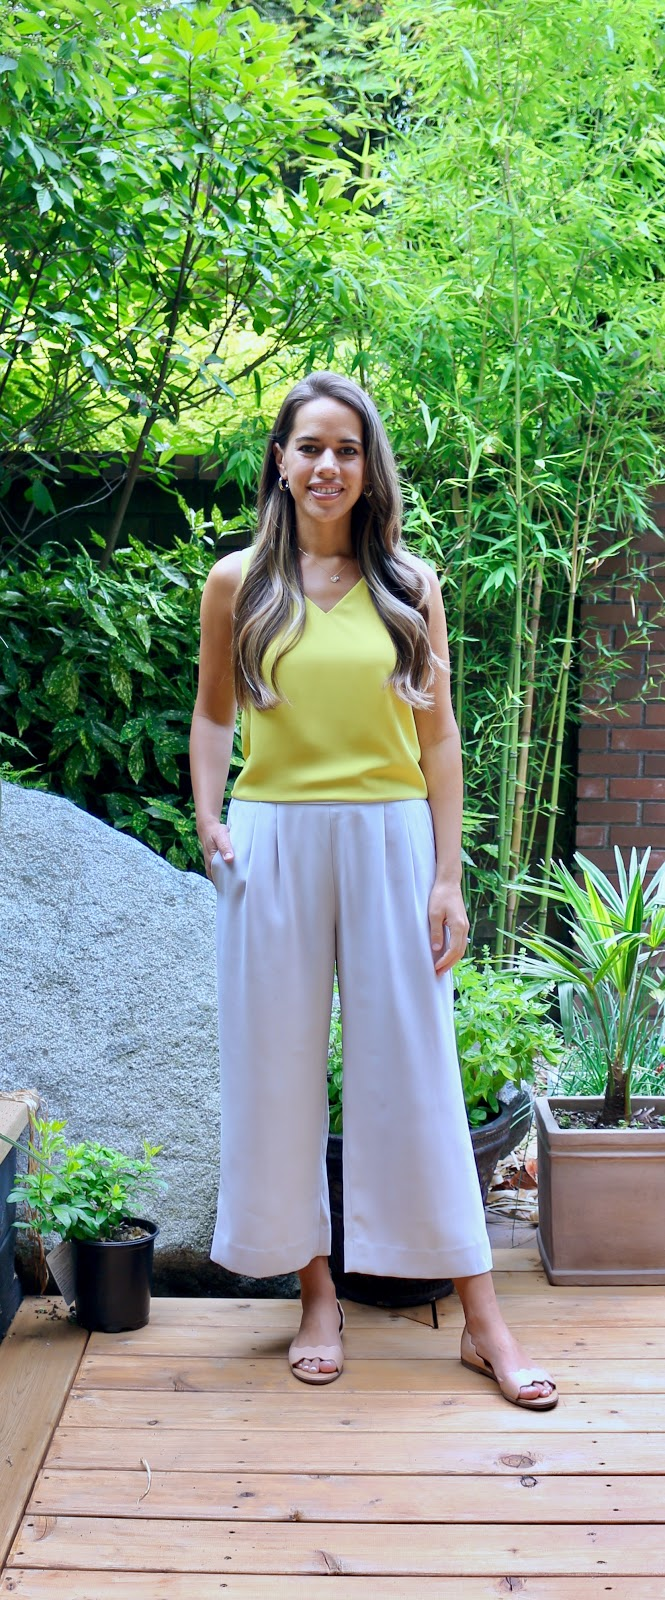 Jules in Flats - Cropped Blouse & Wide Leg Pants (Business Casual Workwear on a Budget)